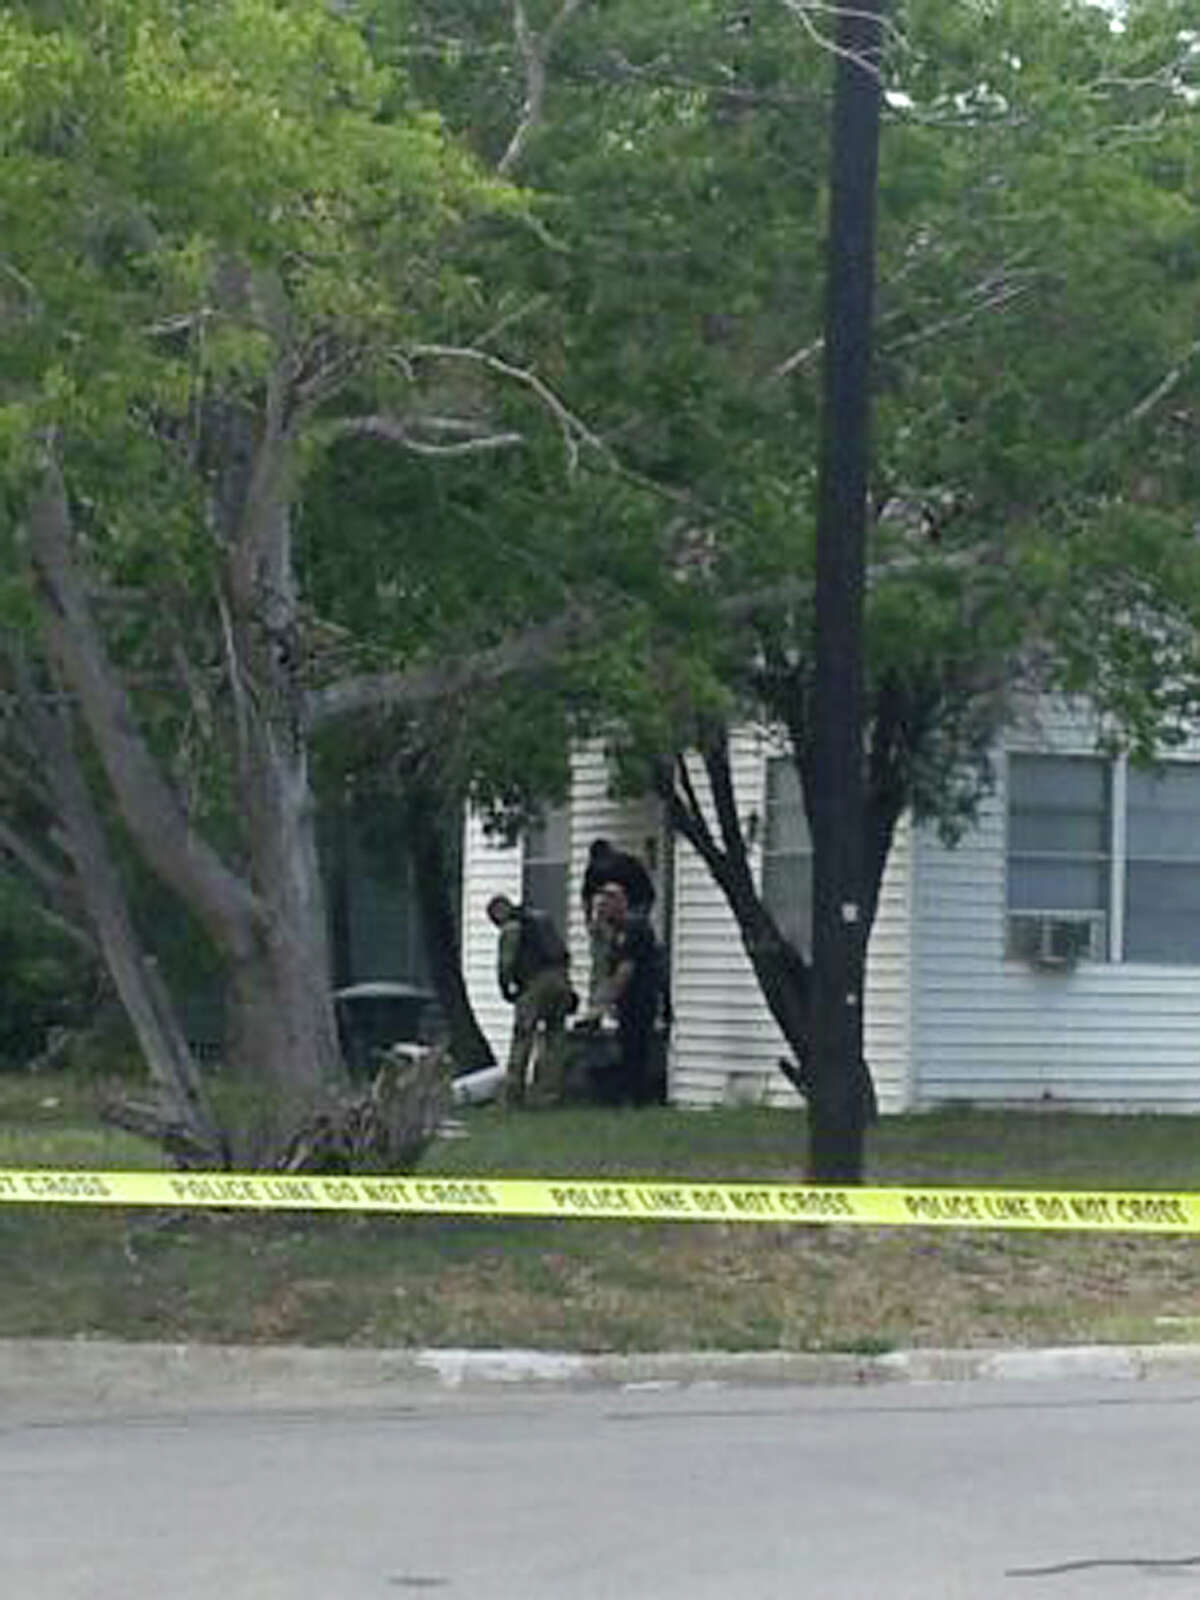 Authorities are seen outside a house near Texas A&M University, where the shootout took place on Monday. A constable, a renter and a bystander were killed.